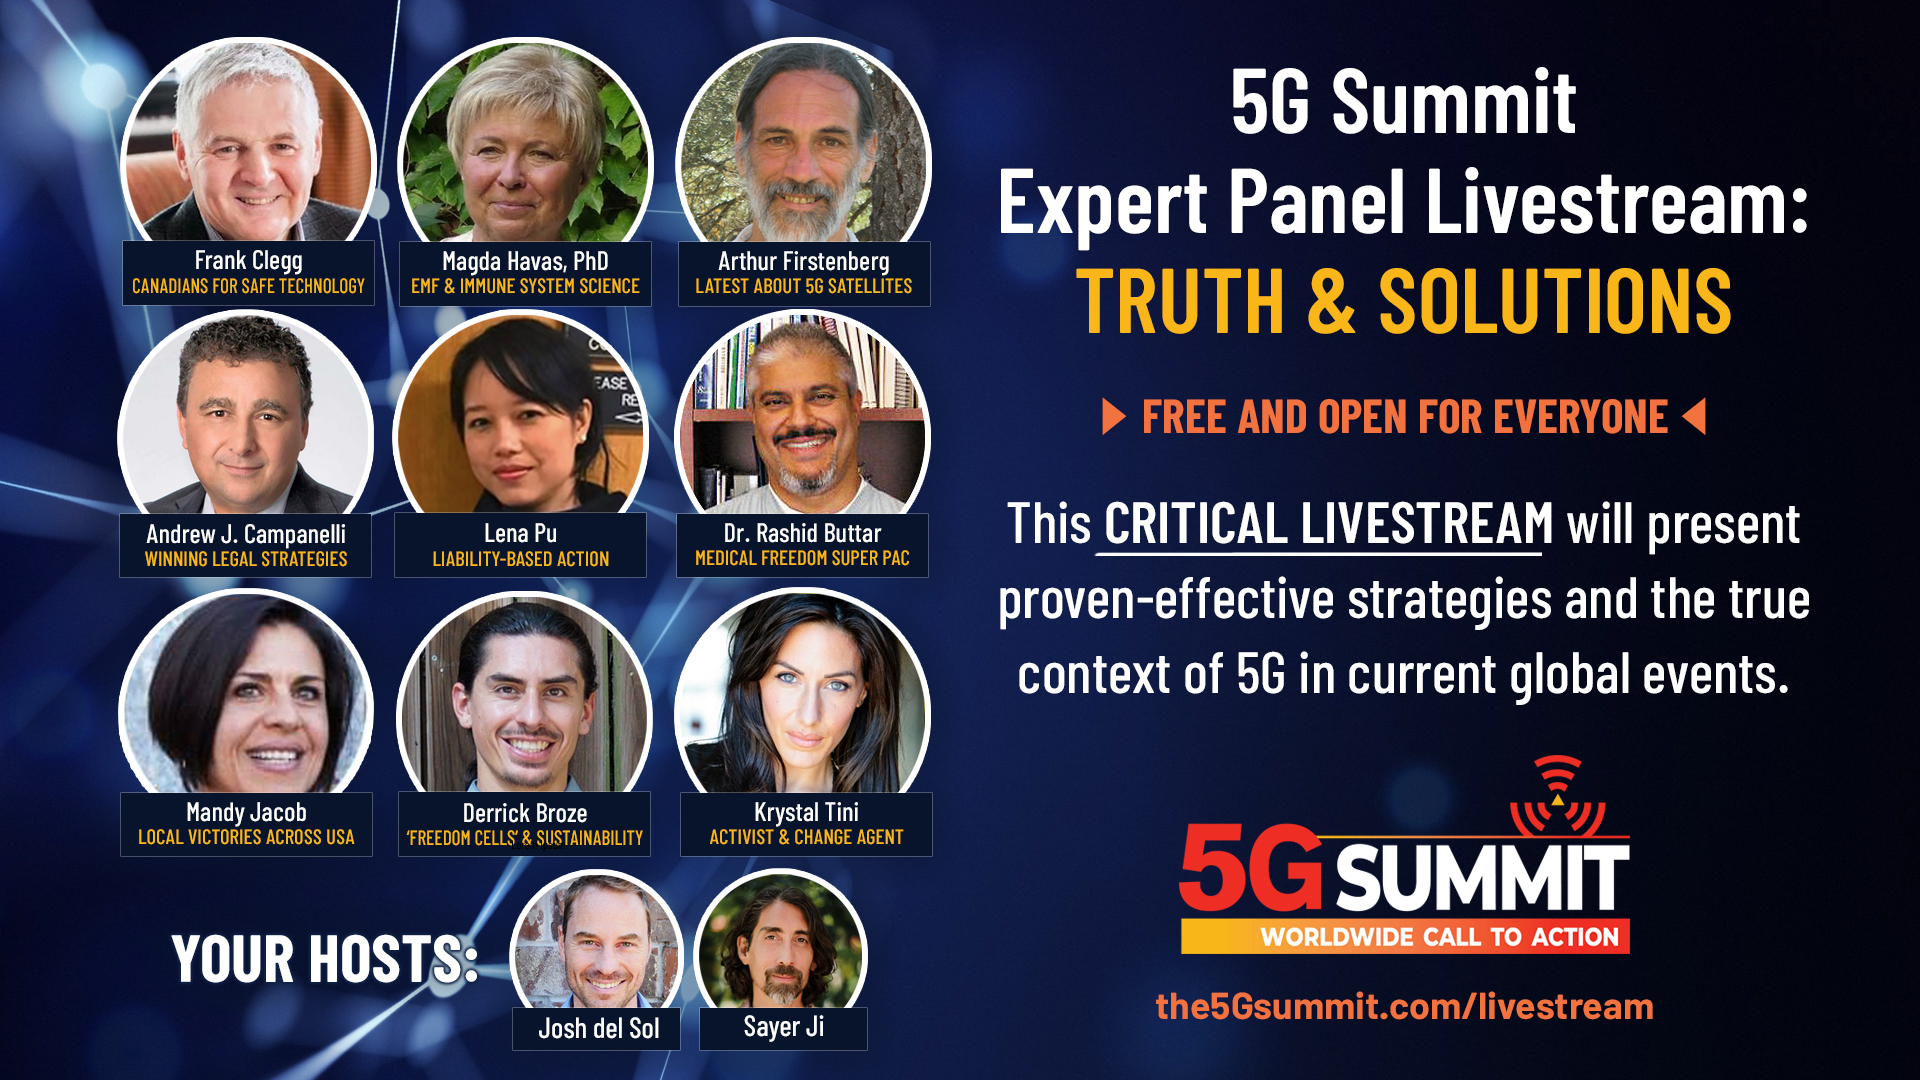 Expert Panel Livestream: Truth and Solutions